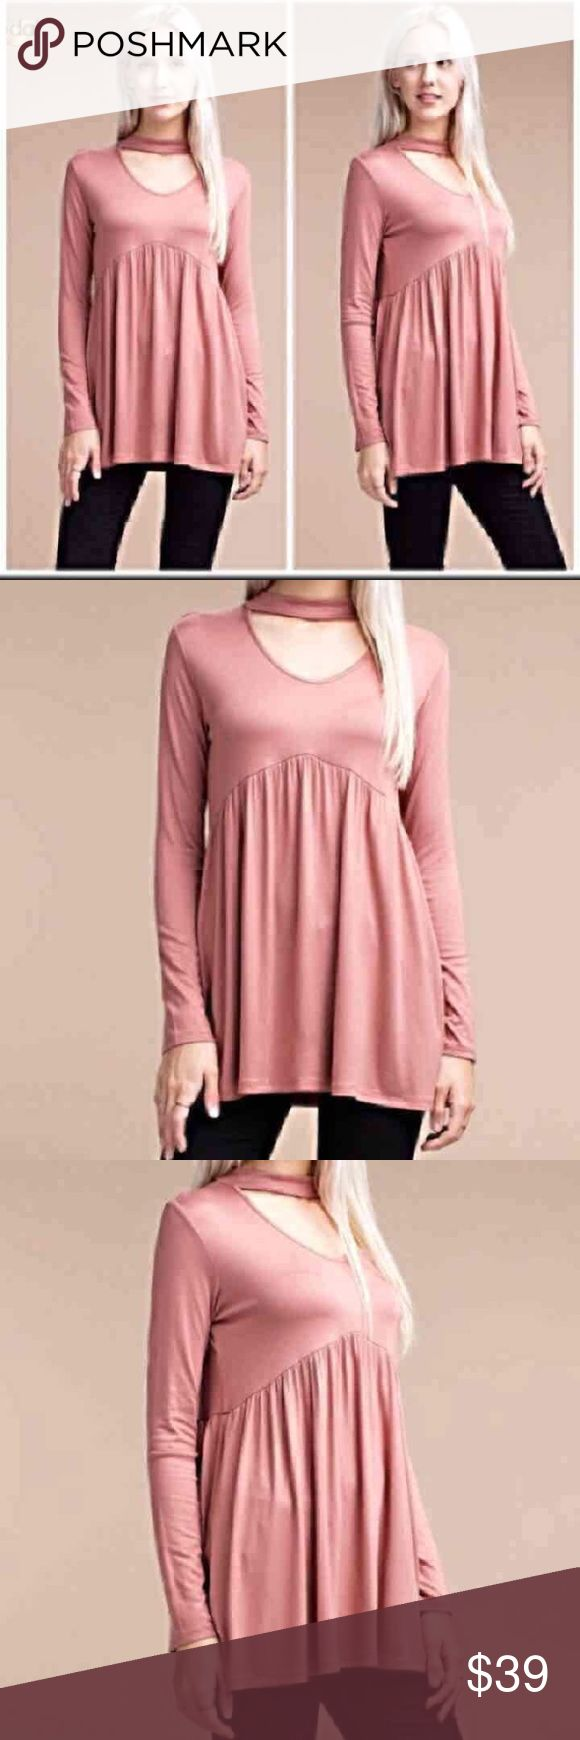 🆕 Luxurious Lenzing Modal blush choker tunic. L New with tags attached. Lenzing Modal a modal fiber from Lenzing. Naturally soft on the skin and exceptionally ecological. Fiber is from Beechwood. Fabrics which envelop the body in a touch of lightness, have become a reality. This top features a choker neck and shirred bodice. Size large.  Bust measures at 36 unstretched.  Length is 39. 96 rayon, 4 spandex Tops Tunics